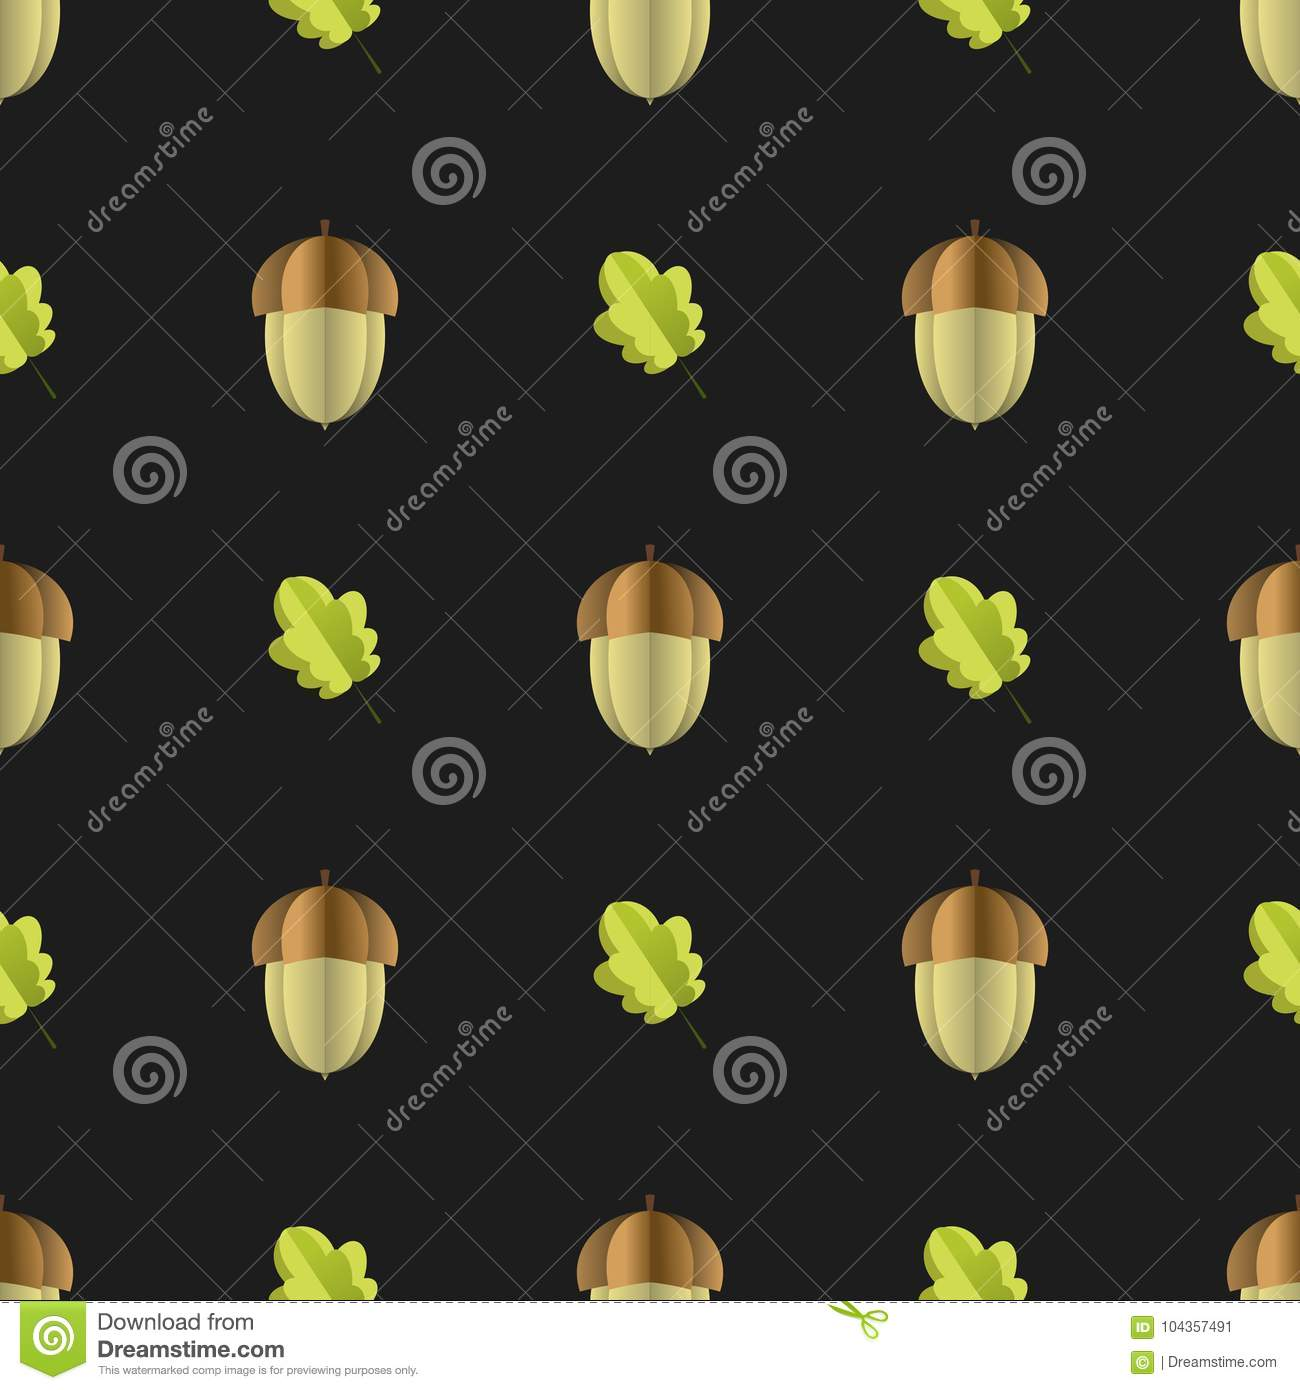 Colorful Seamless Pattern Of Acorn And Leaves Cut Out Of